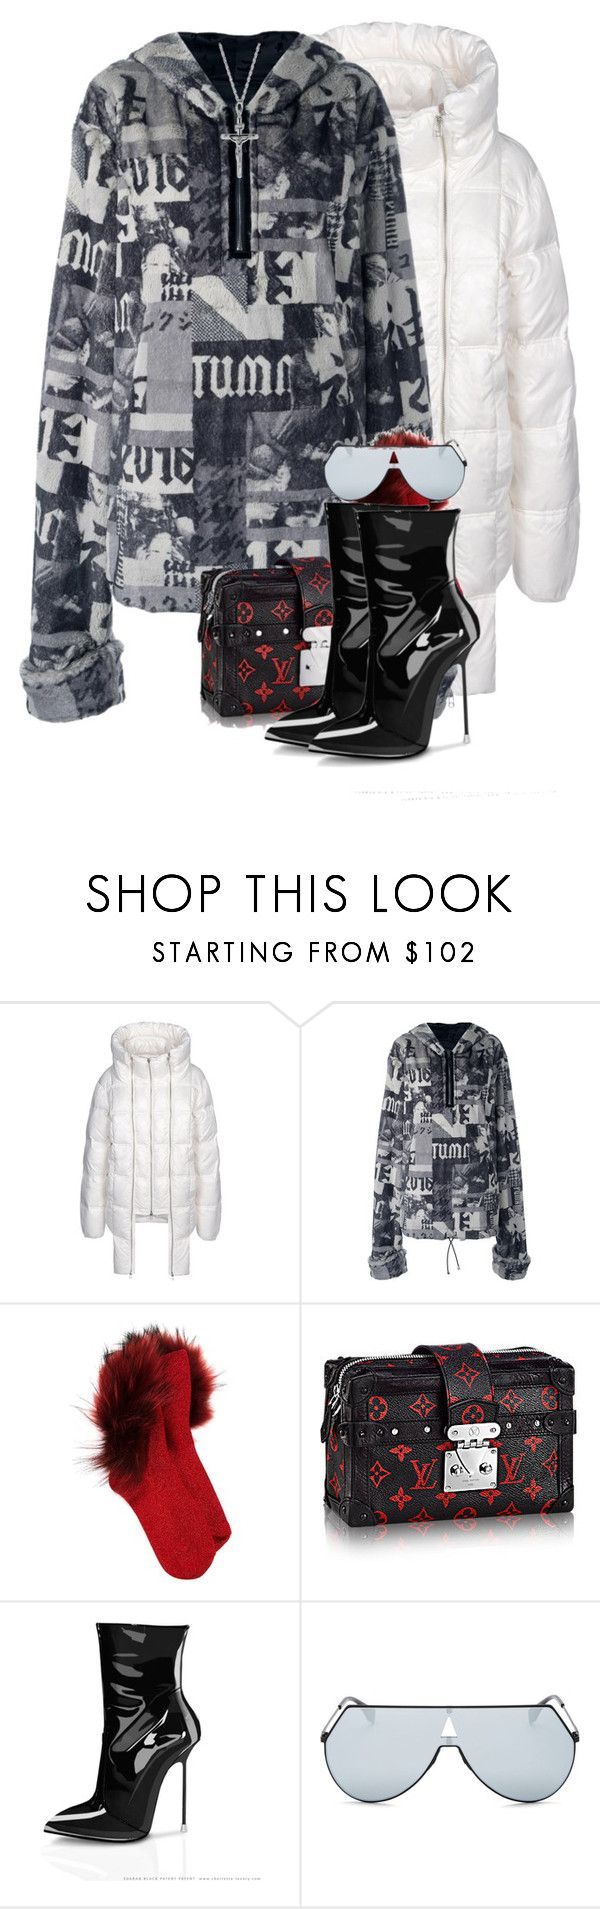 """Untitled #1211"" by jetadorejas ❤ liked on Polyvore featuring Hood by Air, Puma, G.V.G.V. and Fendi"